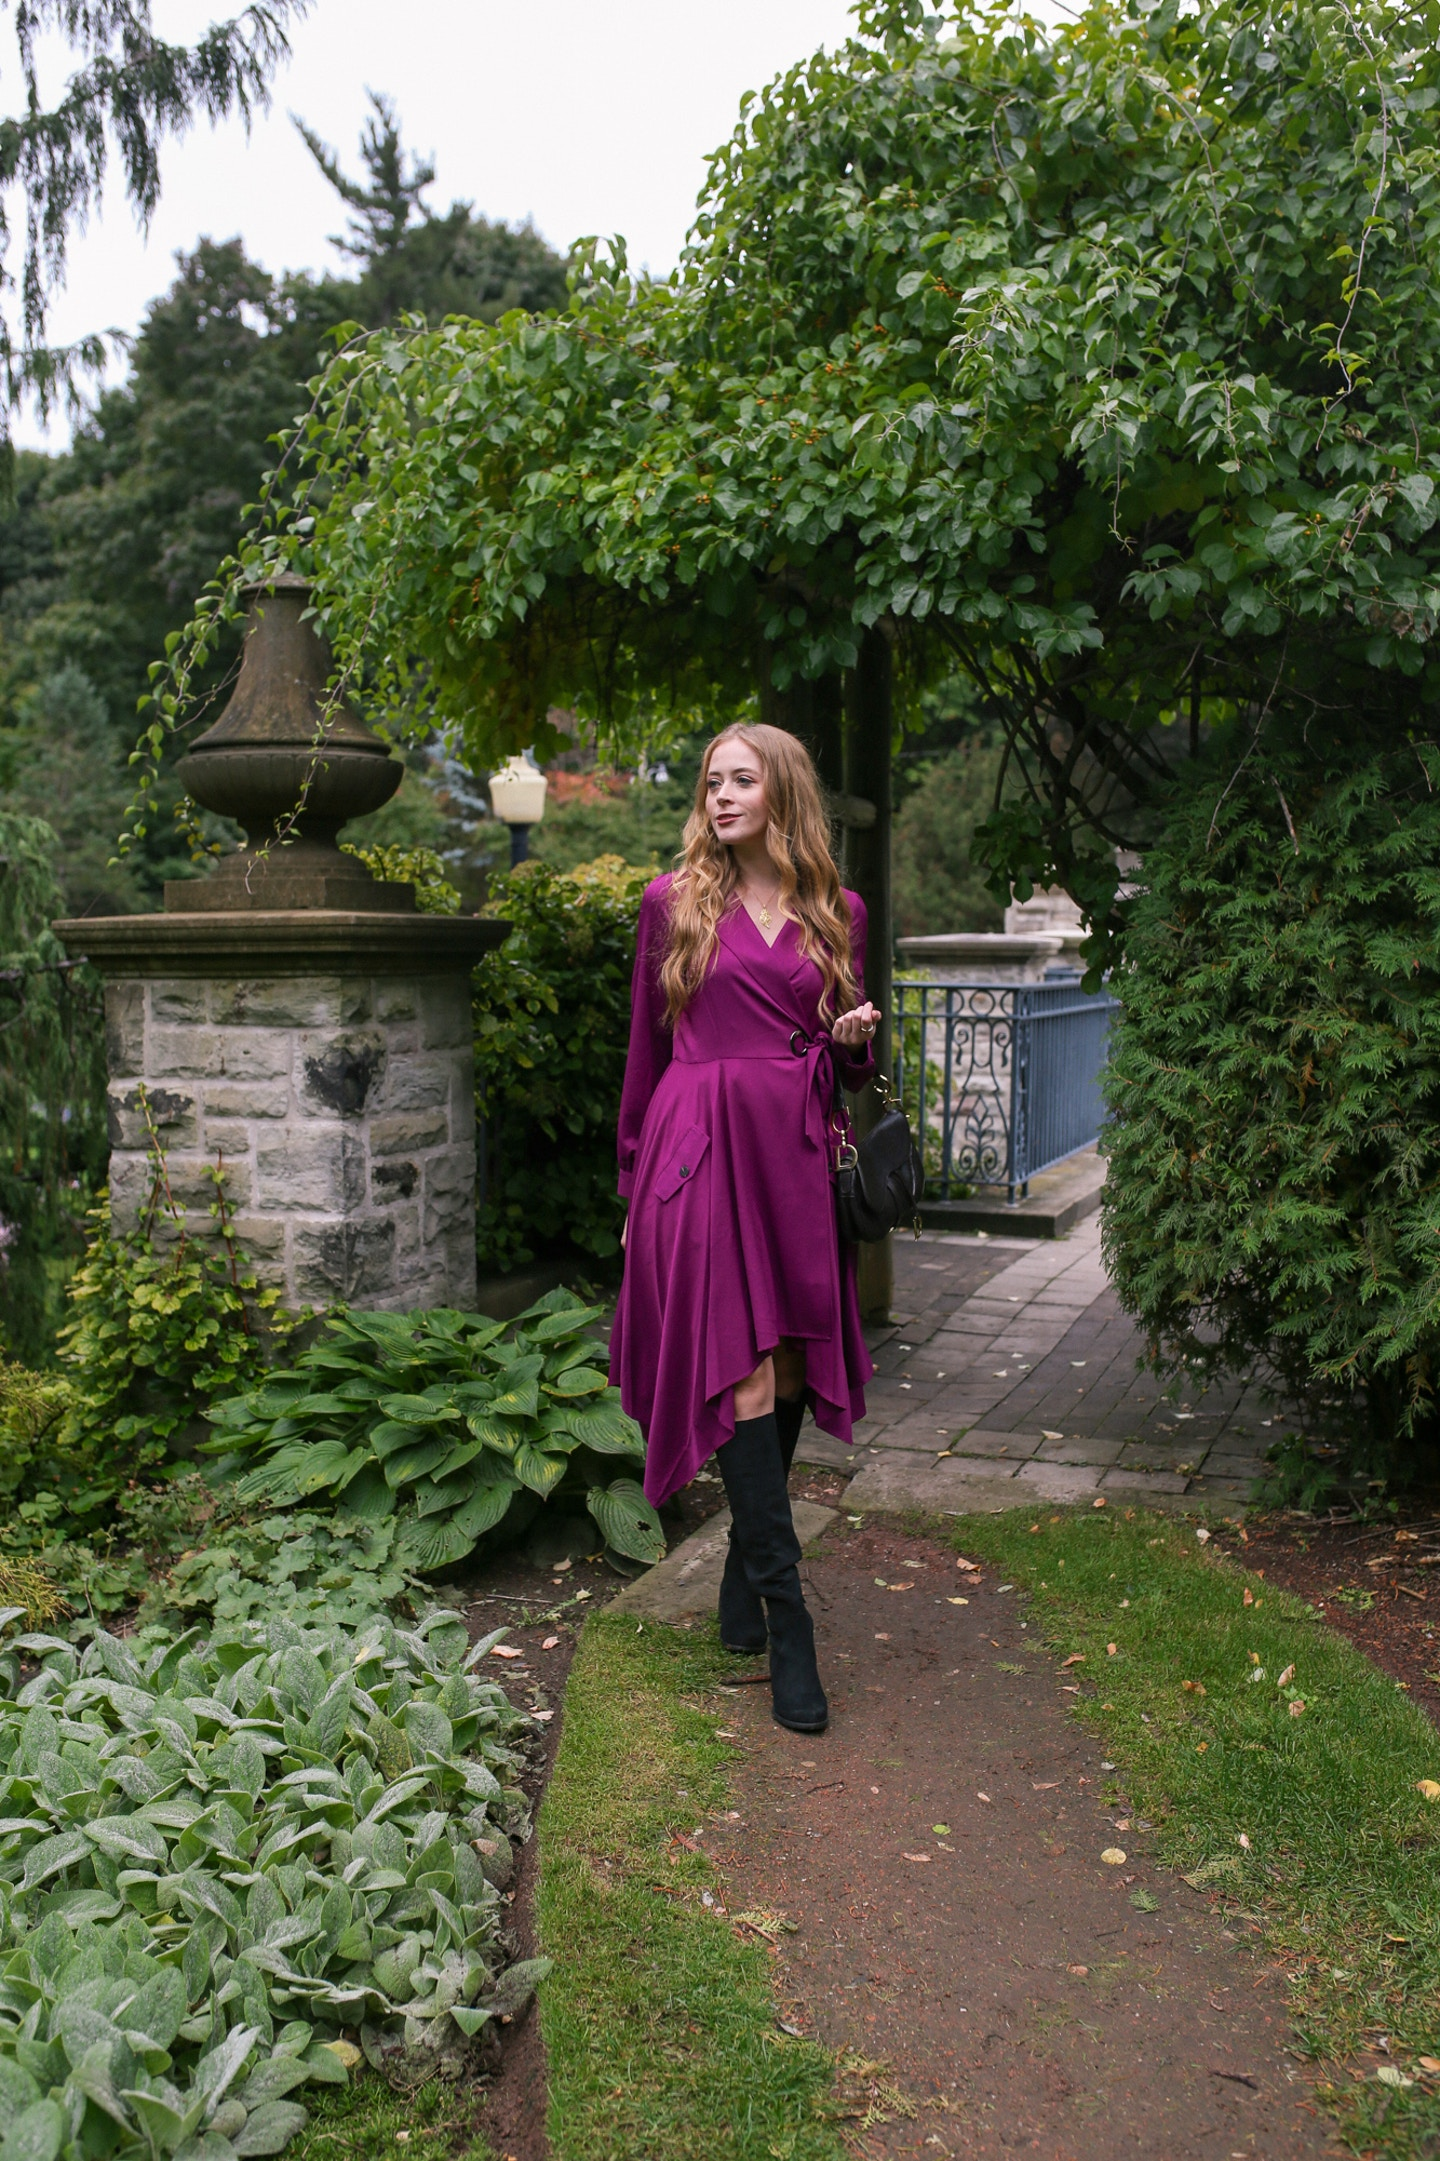 How to wear tall black boots with a dress: styled a pair of Unisa Indyia over the knee boots with a Chriselle Lim Wren Trench dress for a chic fall look perfect for a concert or date night.